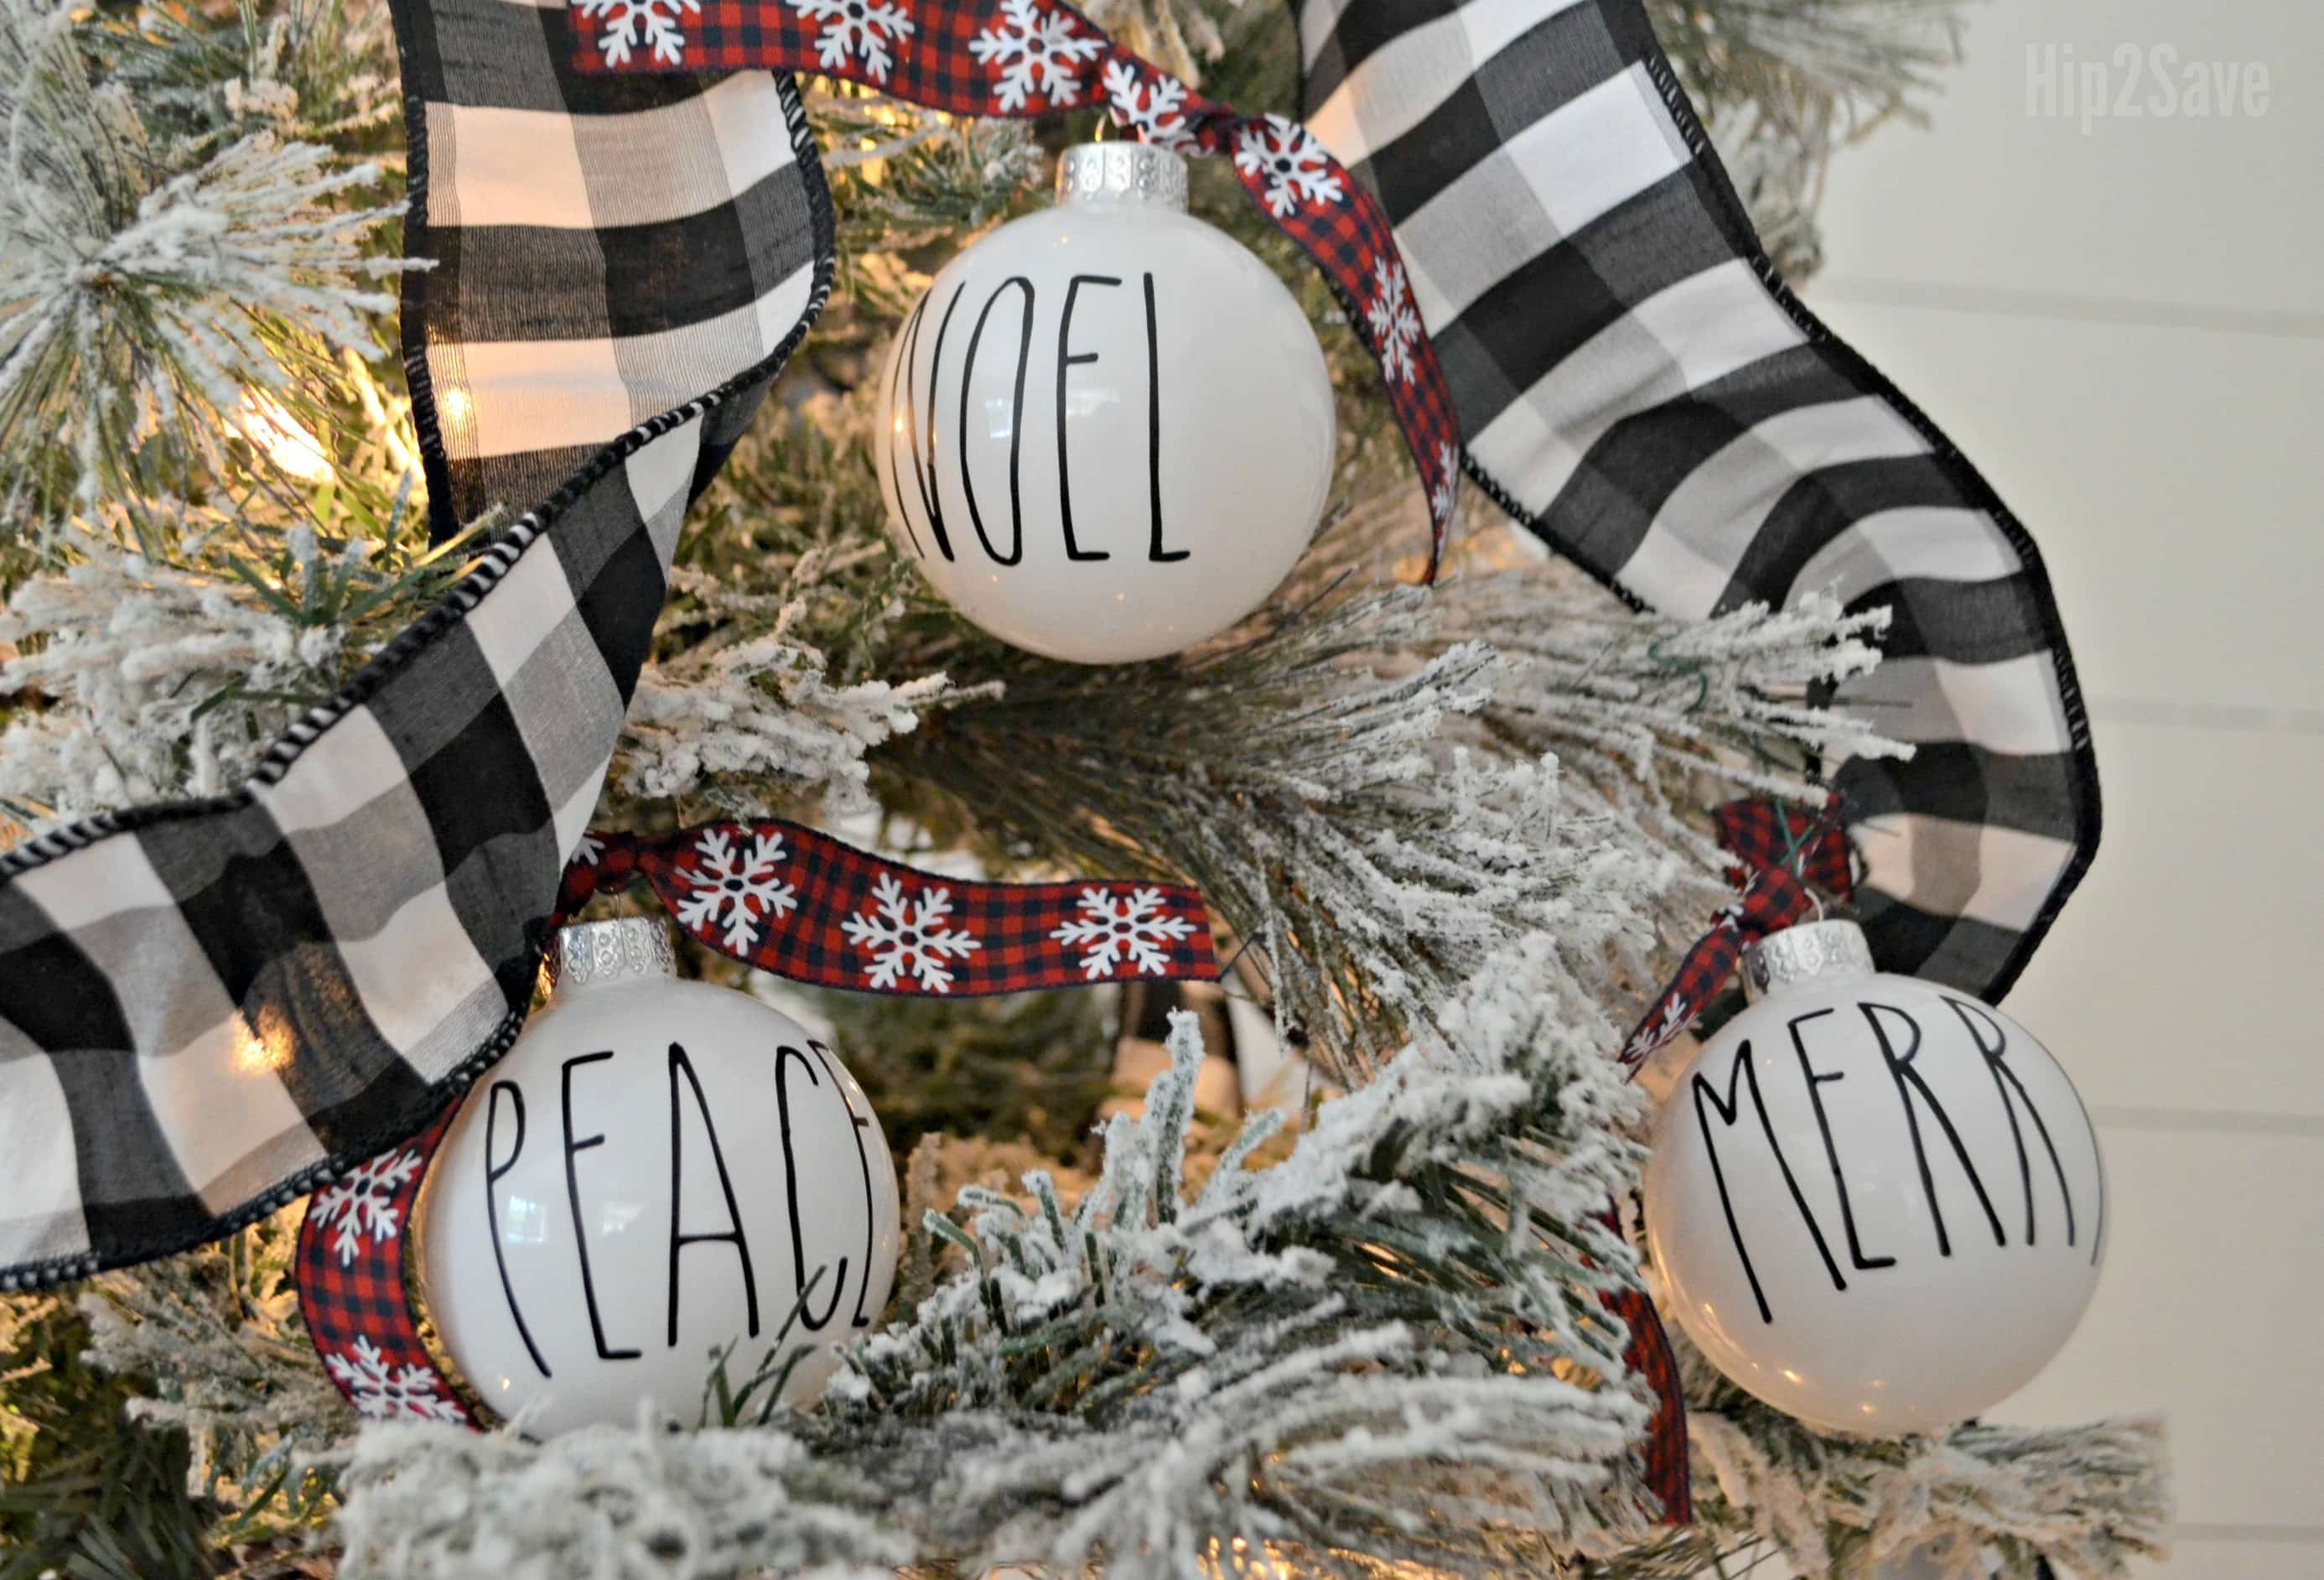 White ornaments with Noel, Peace, and Merry written on them in black sharpie.